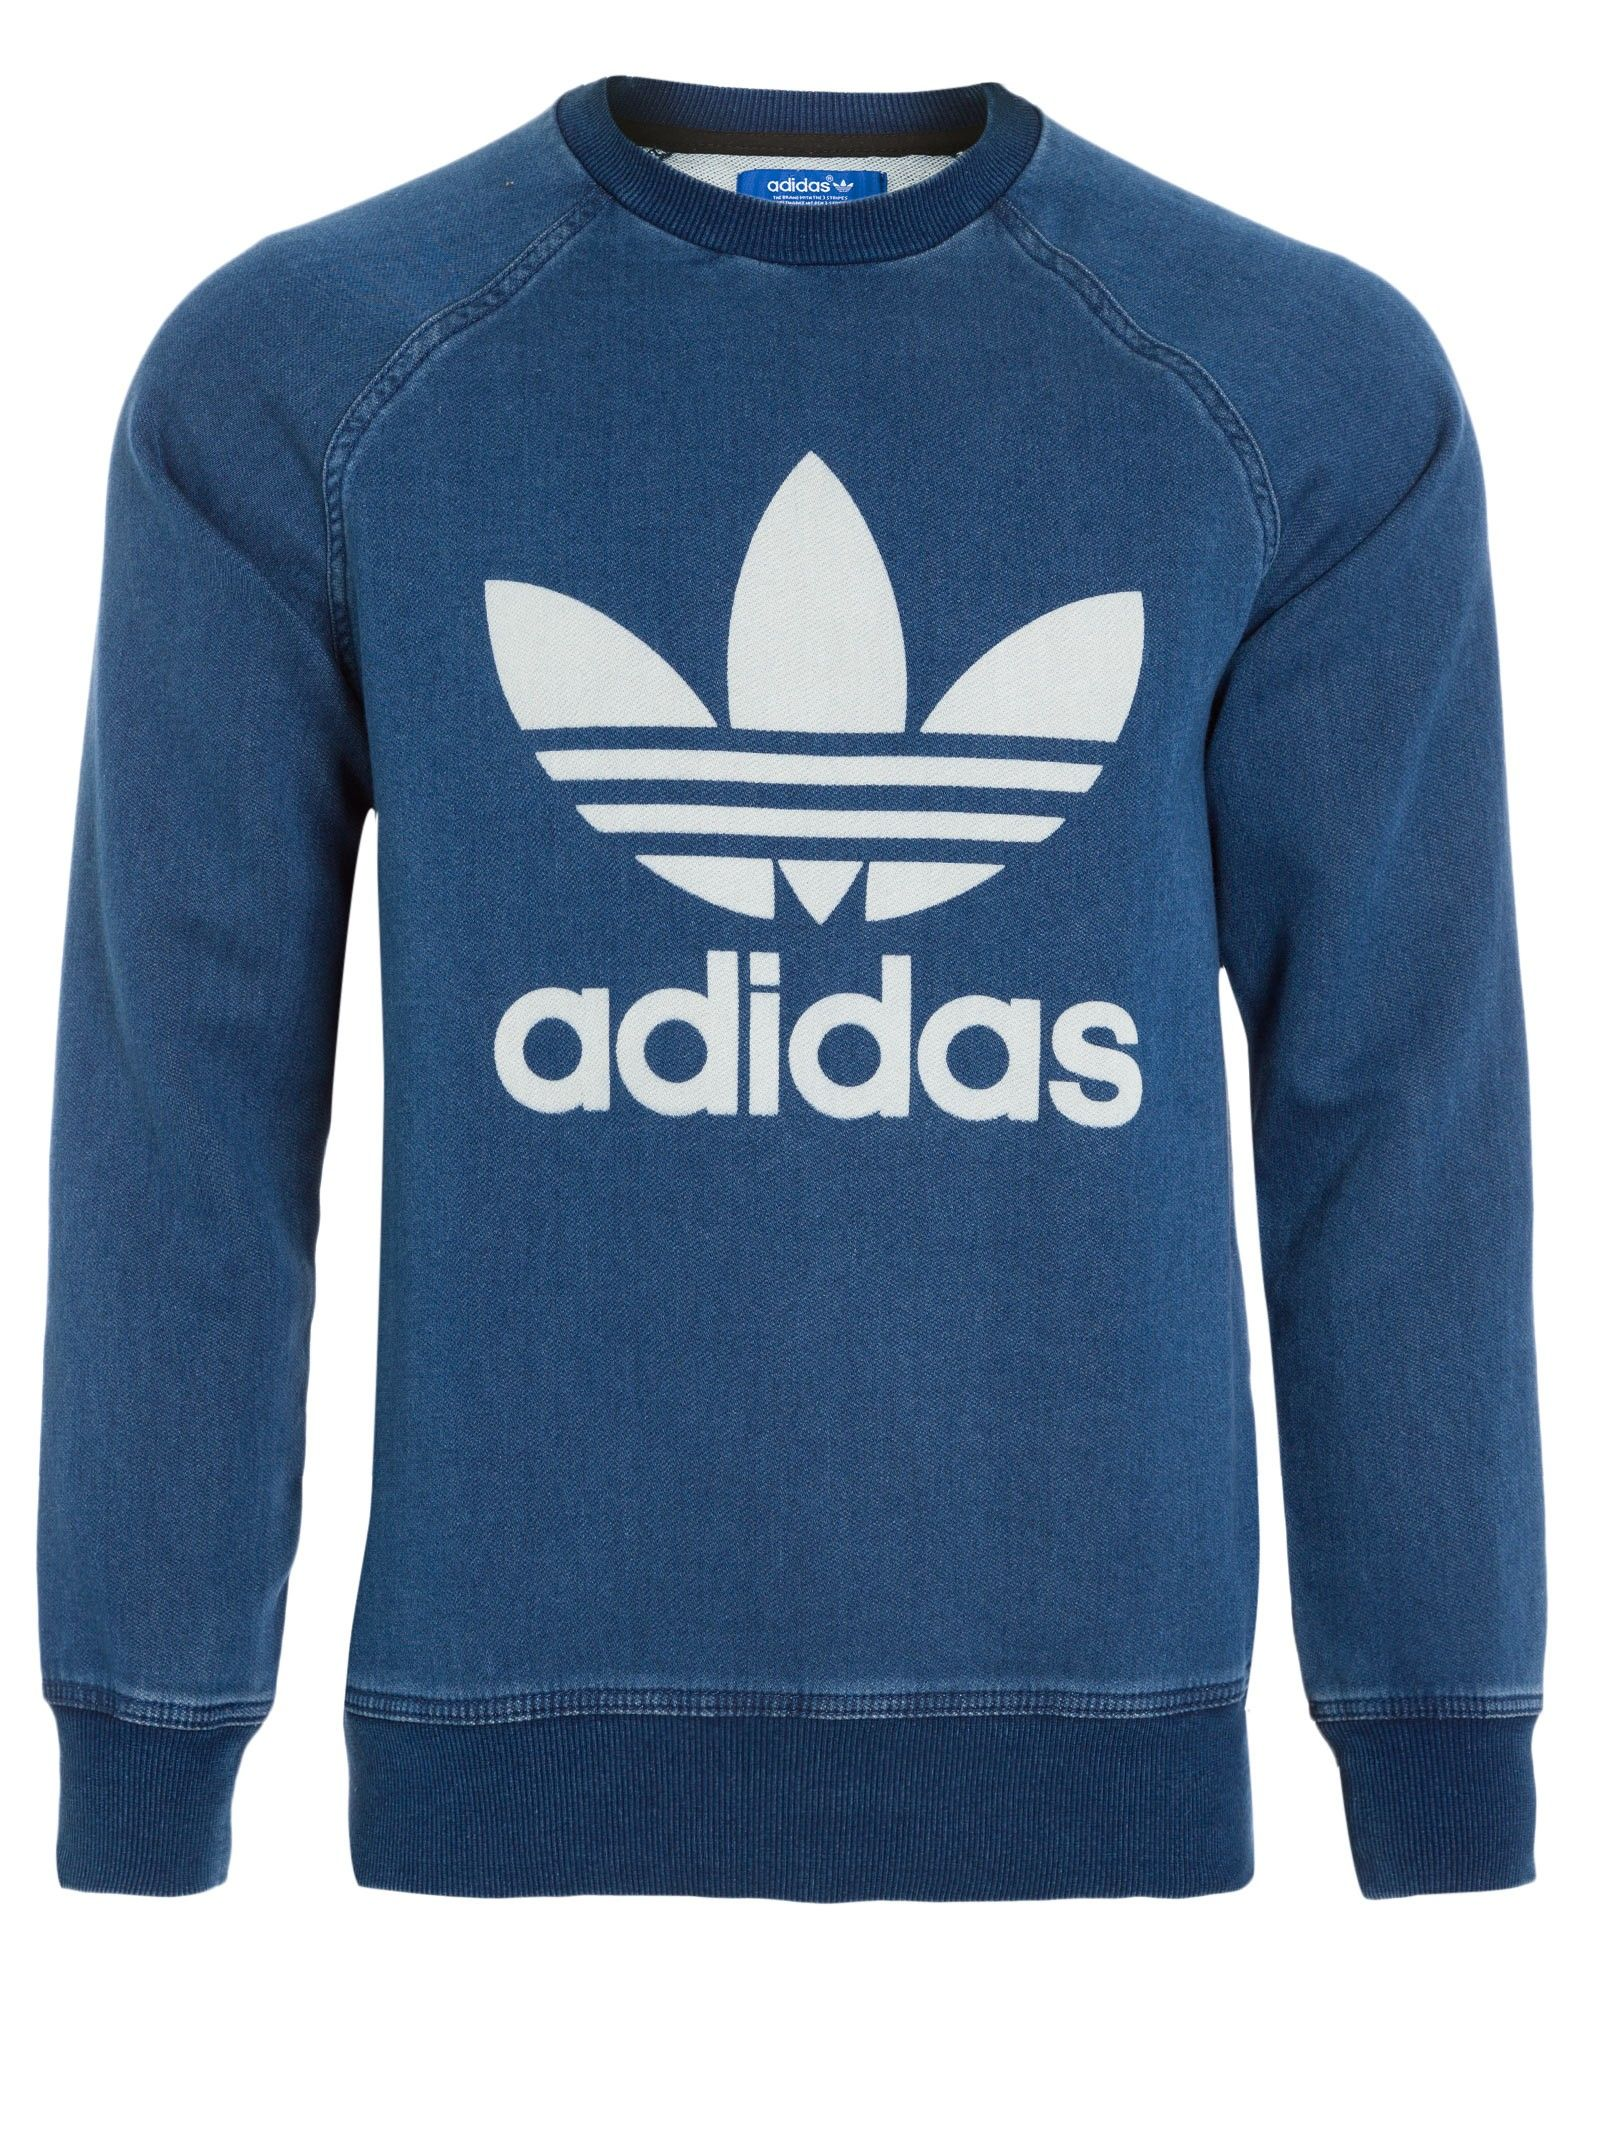 1851608f1b566 Shop2gether - Moletom Masculino Denim - Adidas Originals - Azul ...